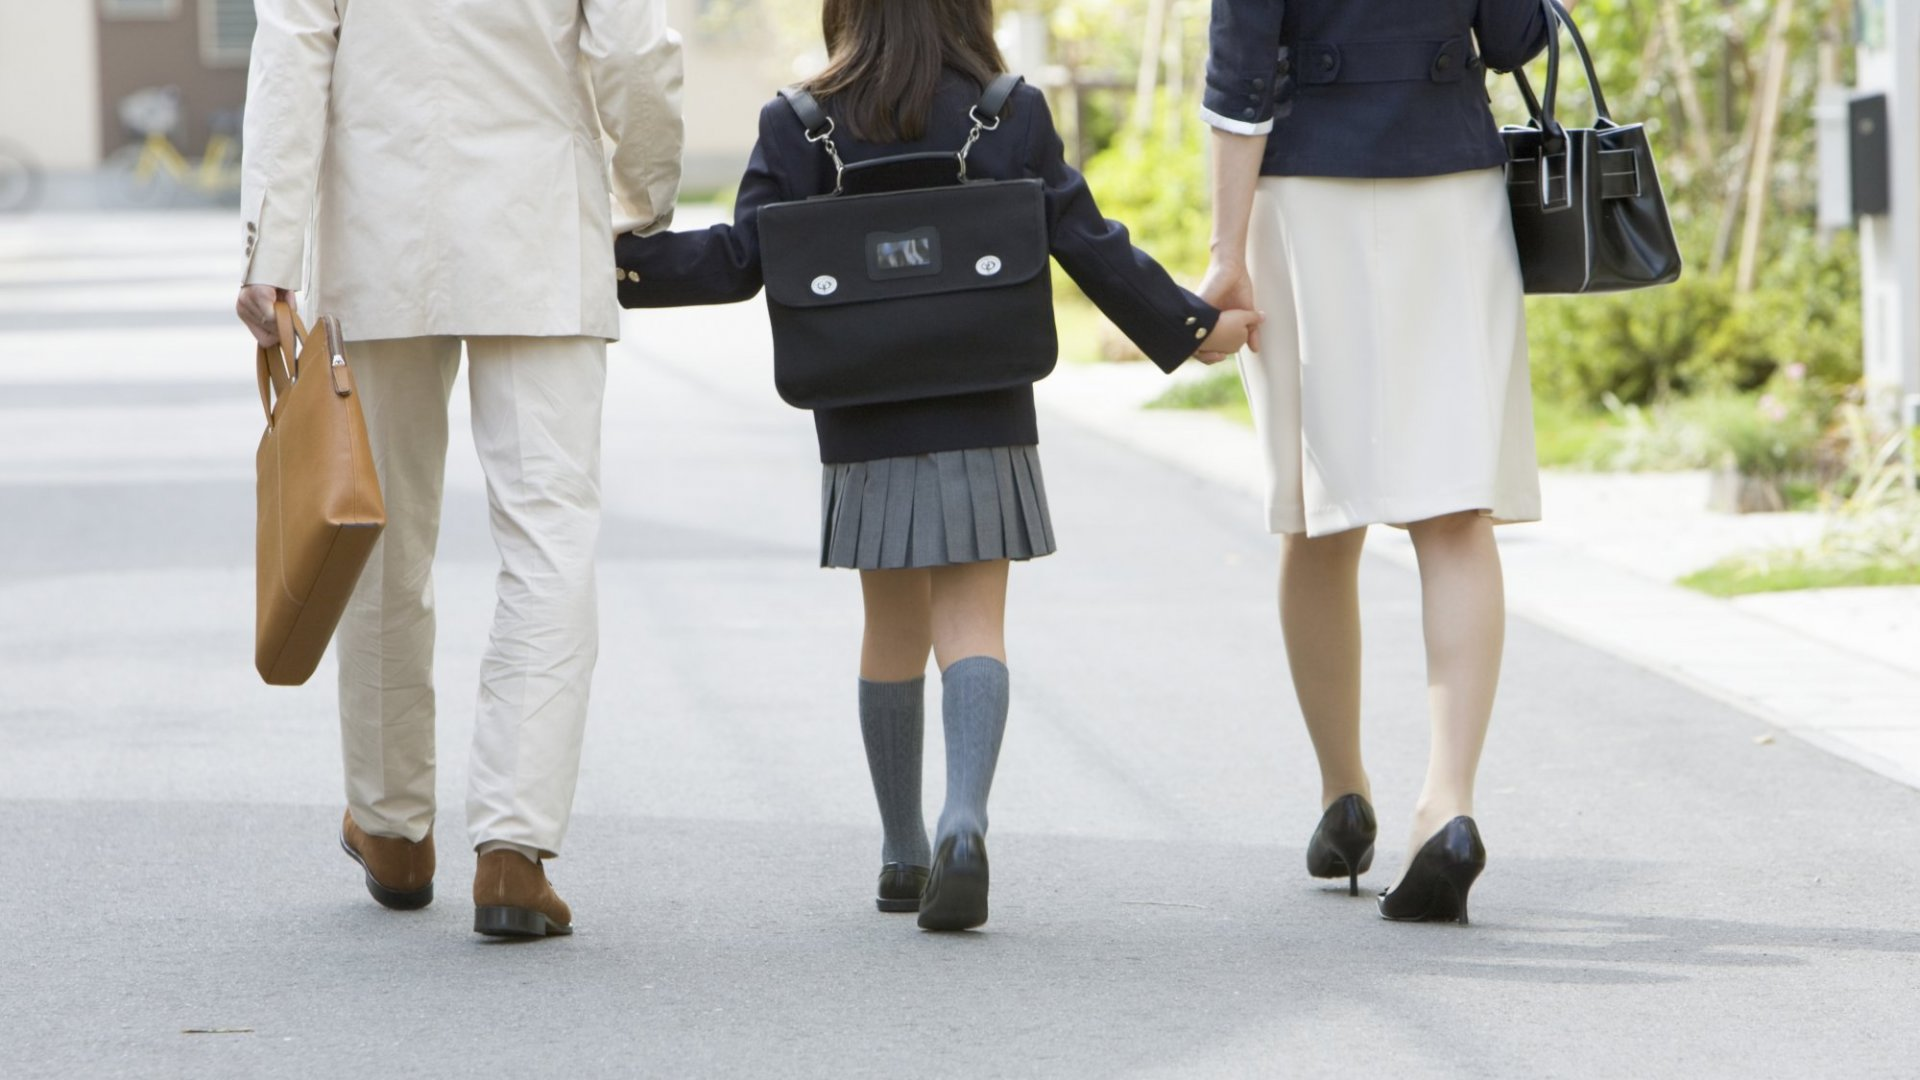 Stay-at-Home Moms: What to Do About an Employment Gap